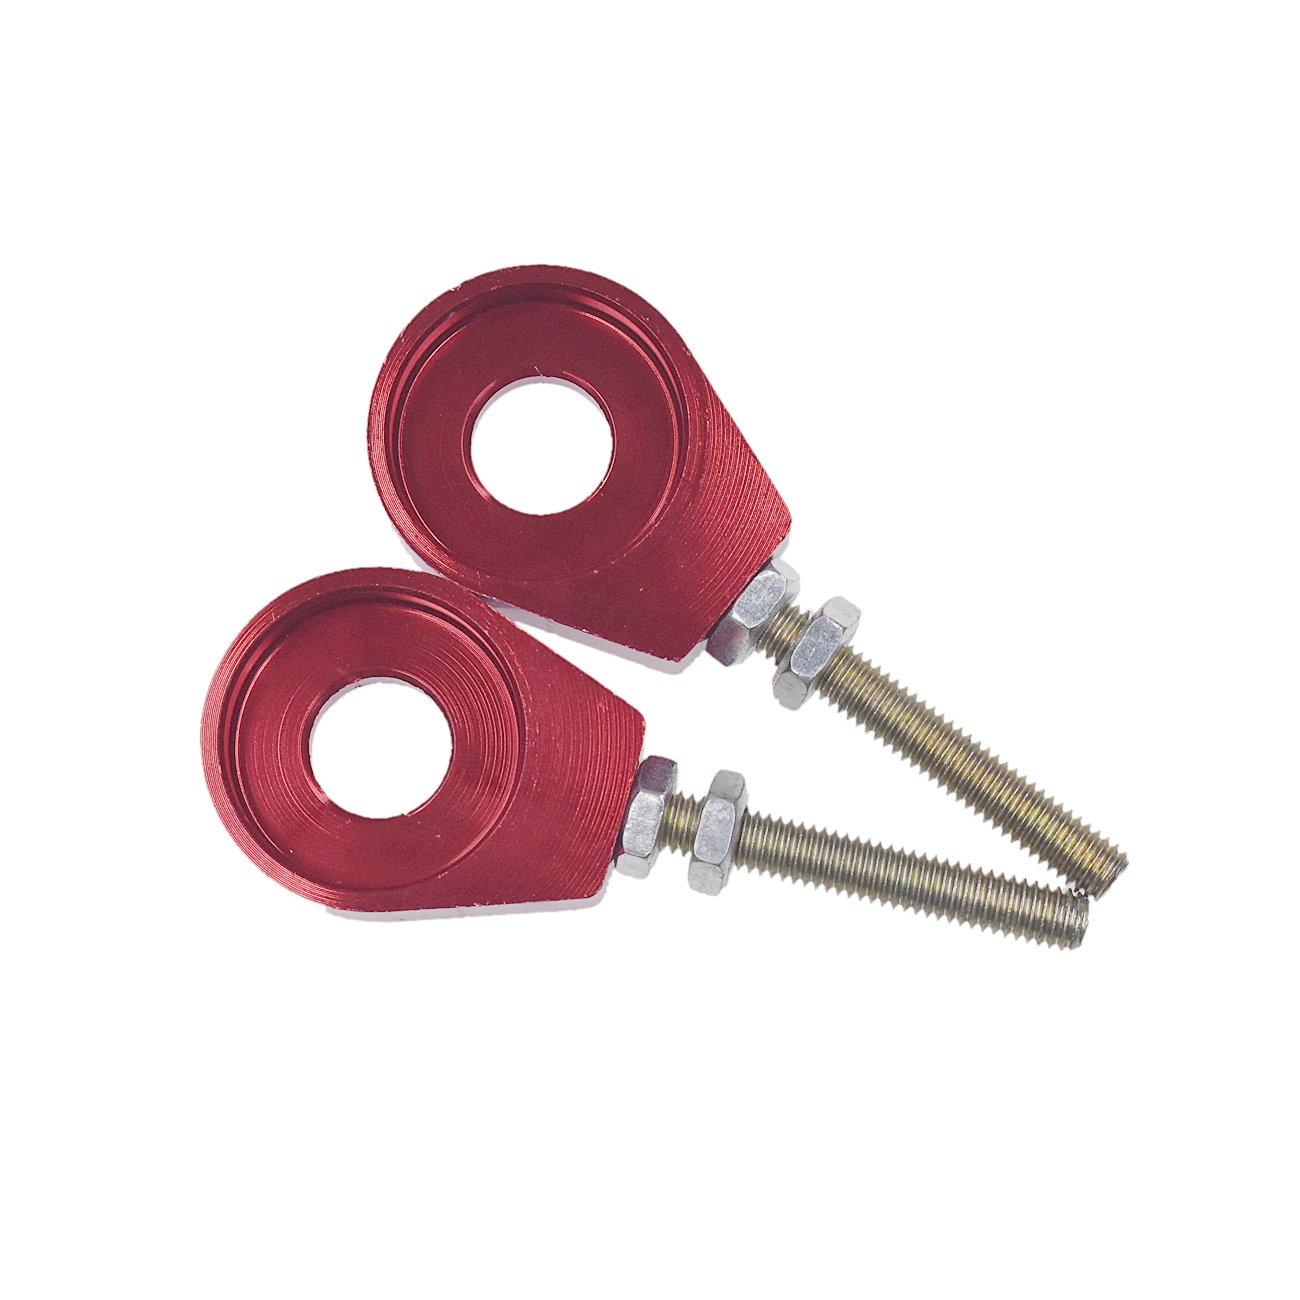 JRL 2pcs 12mm Chain Tensioner Adjusters Fit Honda XR CRF50 70 DHZ BBR KLX114 IMR Dirt Bike ATV Scooter Bike Scooter